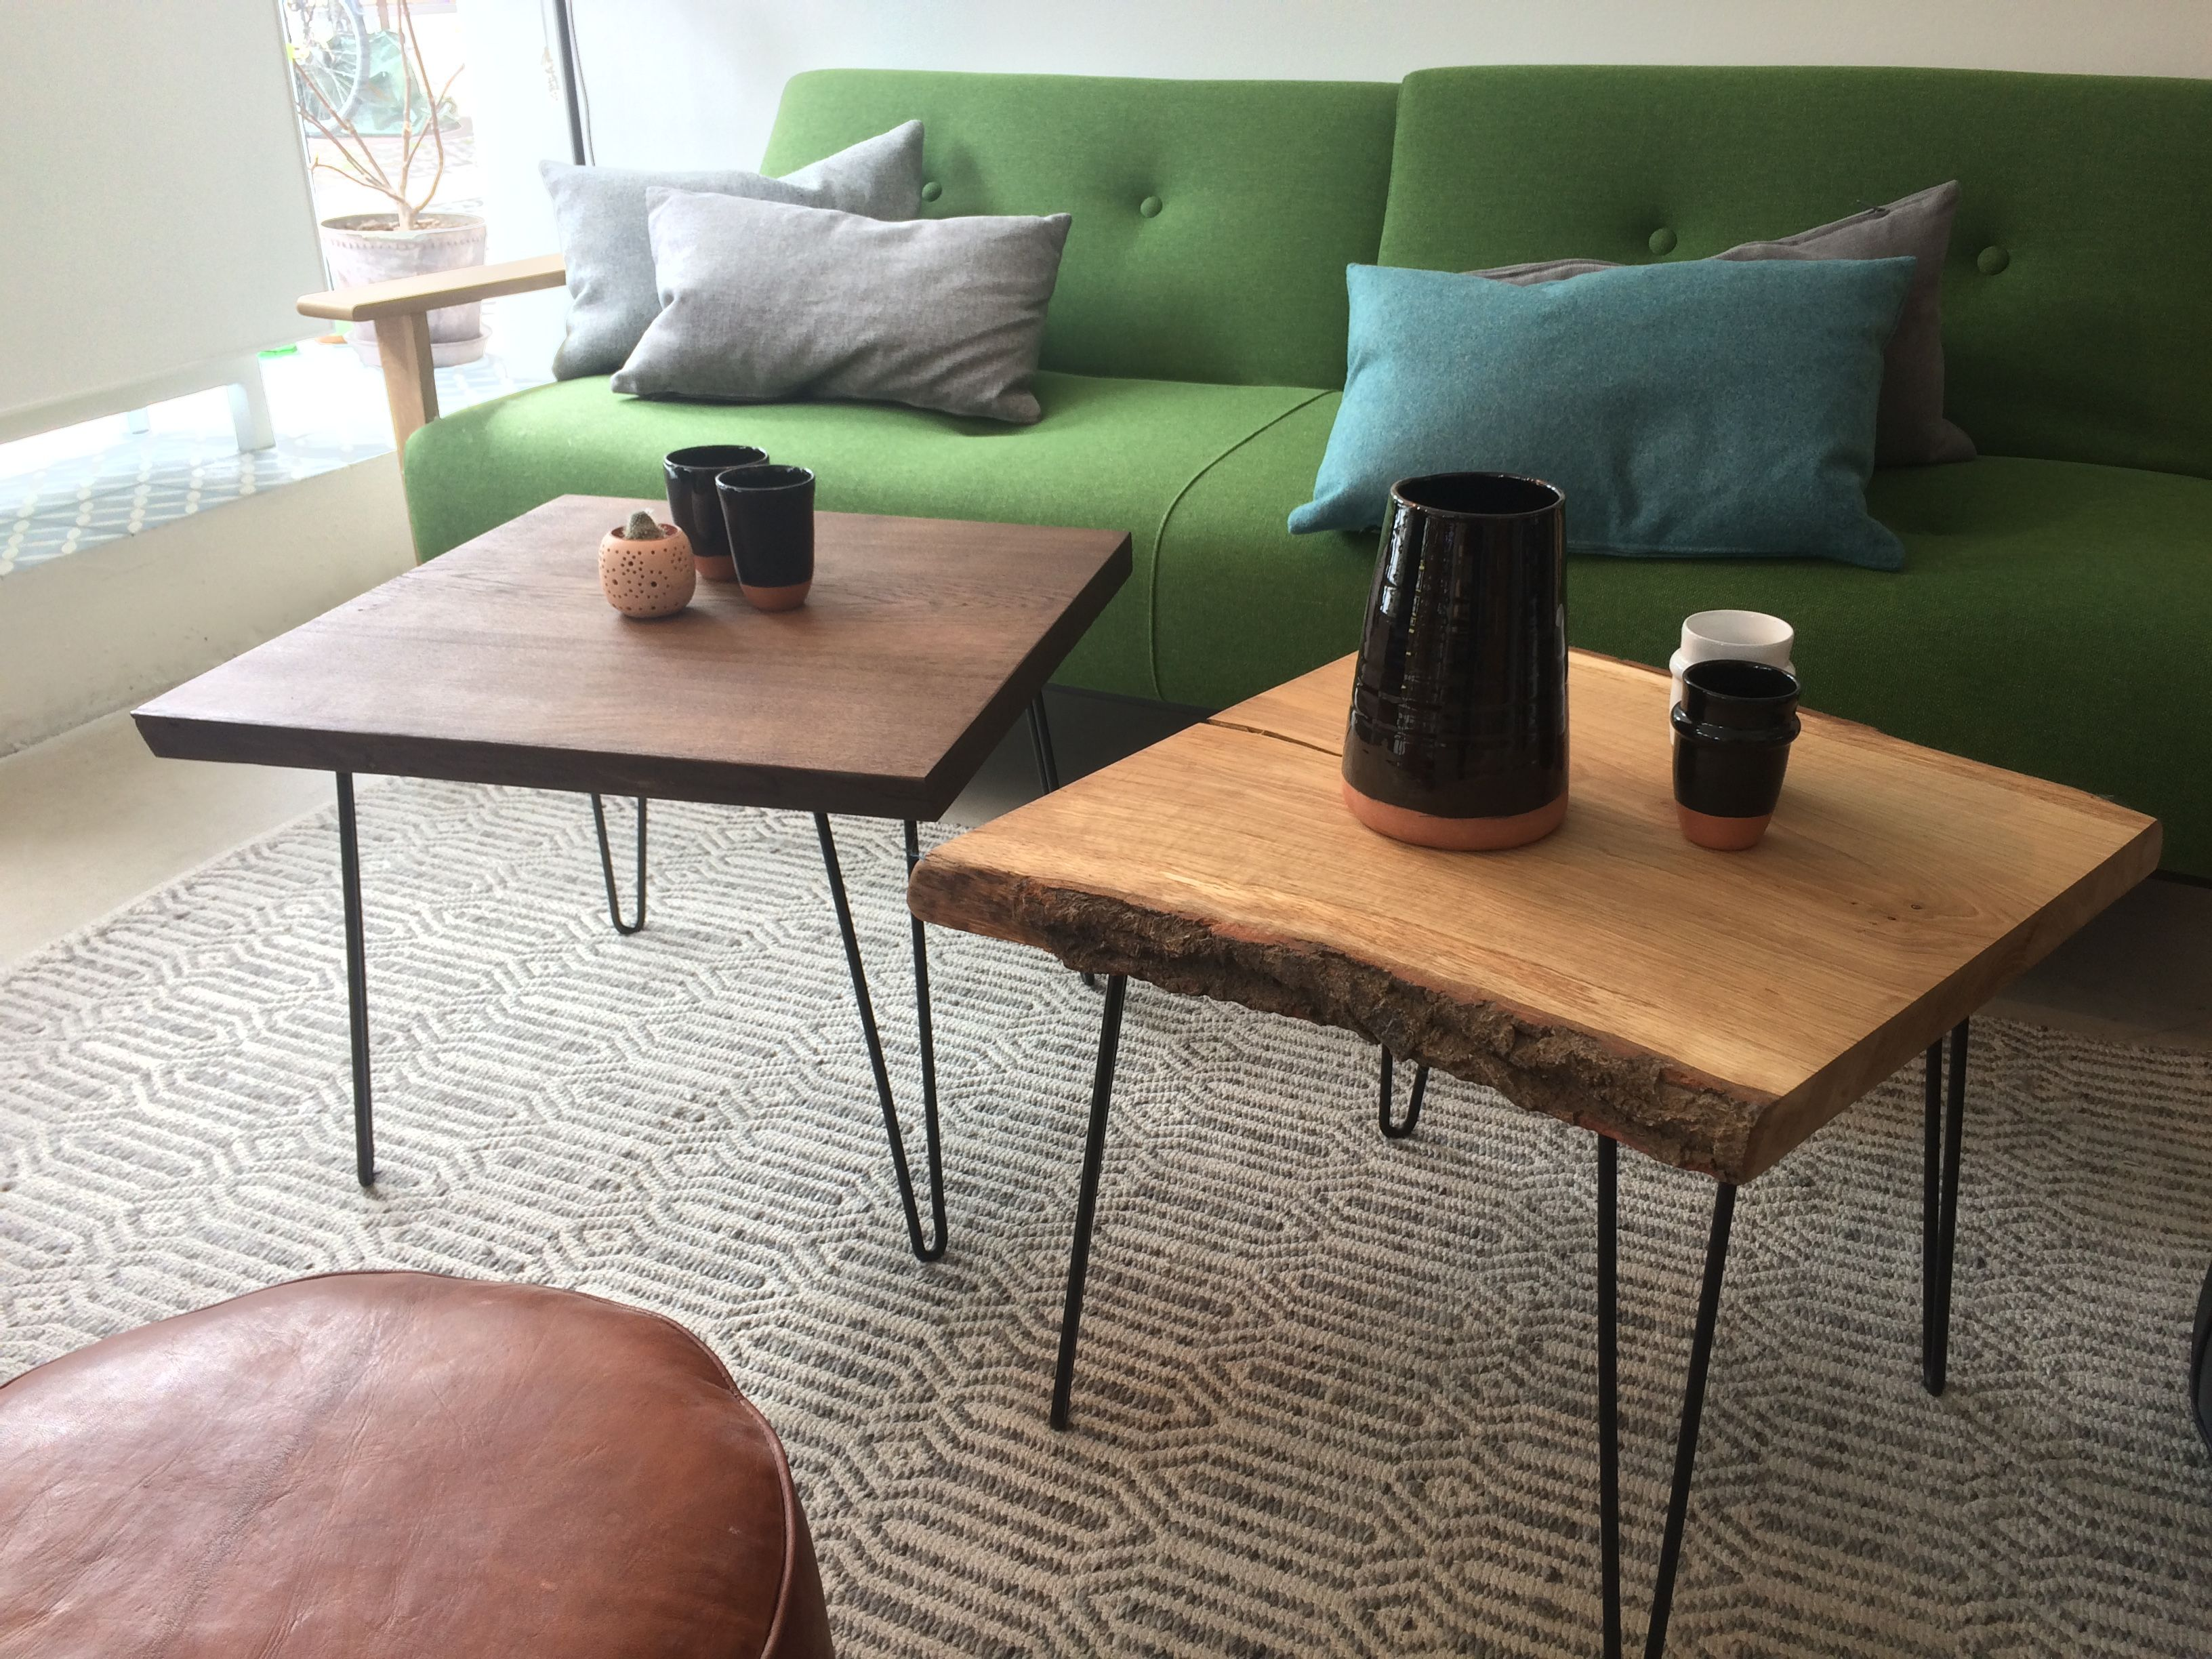 Lovely Little Plank Tables Used As Coffee Tables. Made Out Of Residues From  The Making